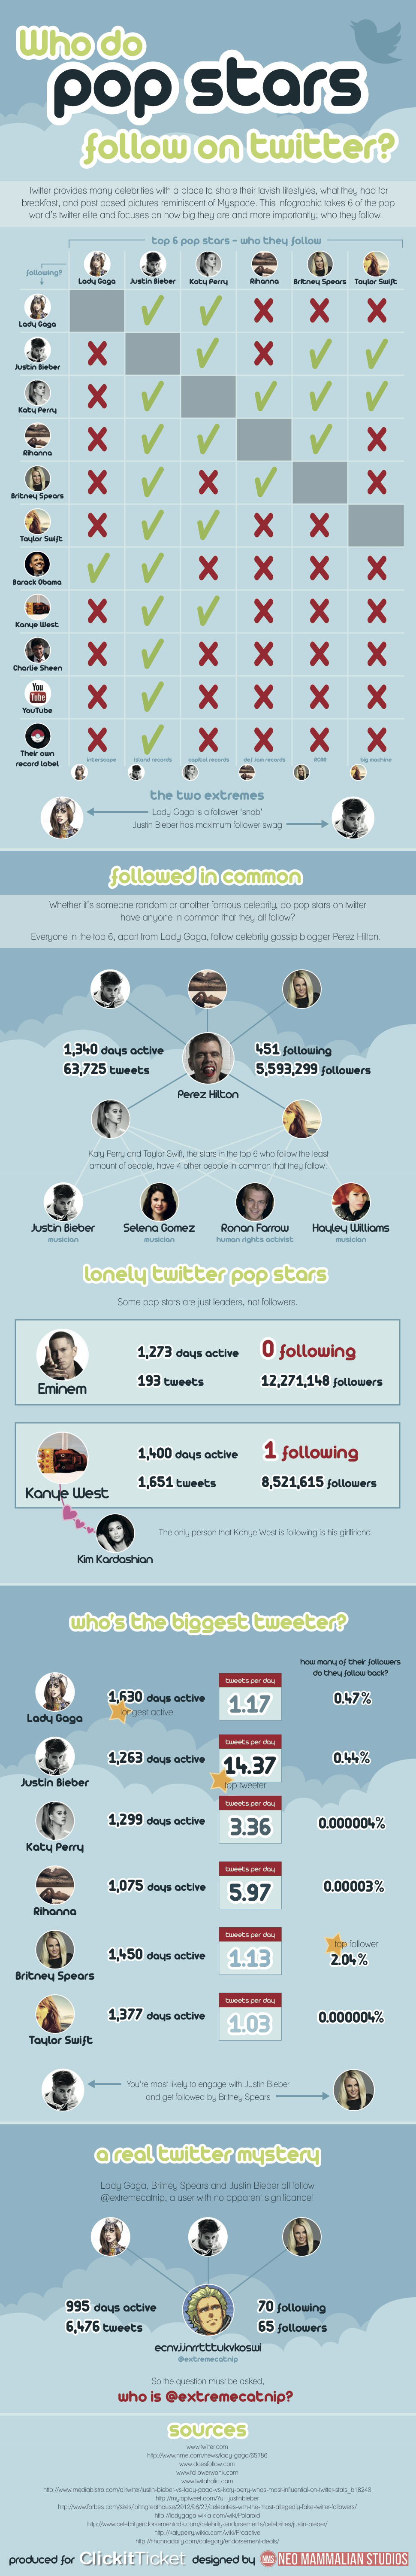 Who Do Pop Starts Follow 2012 Infographic